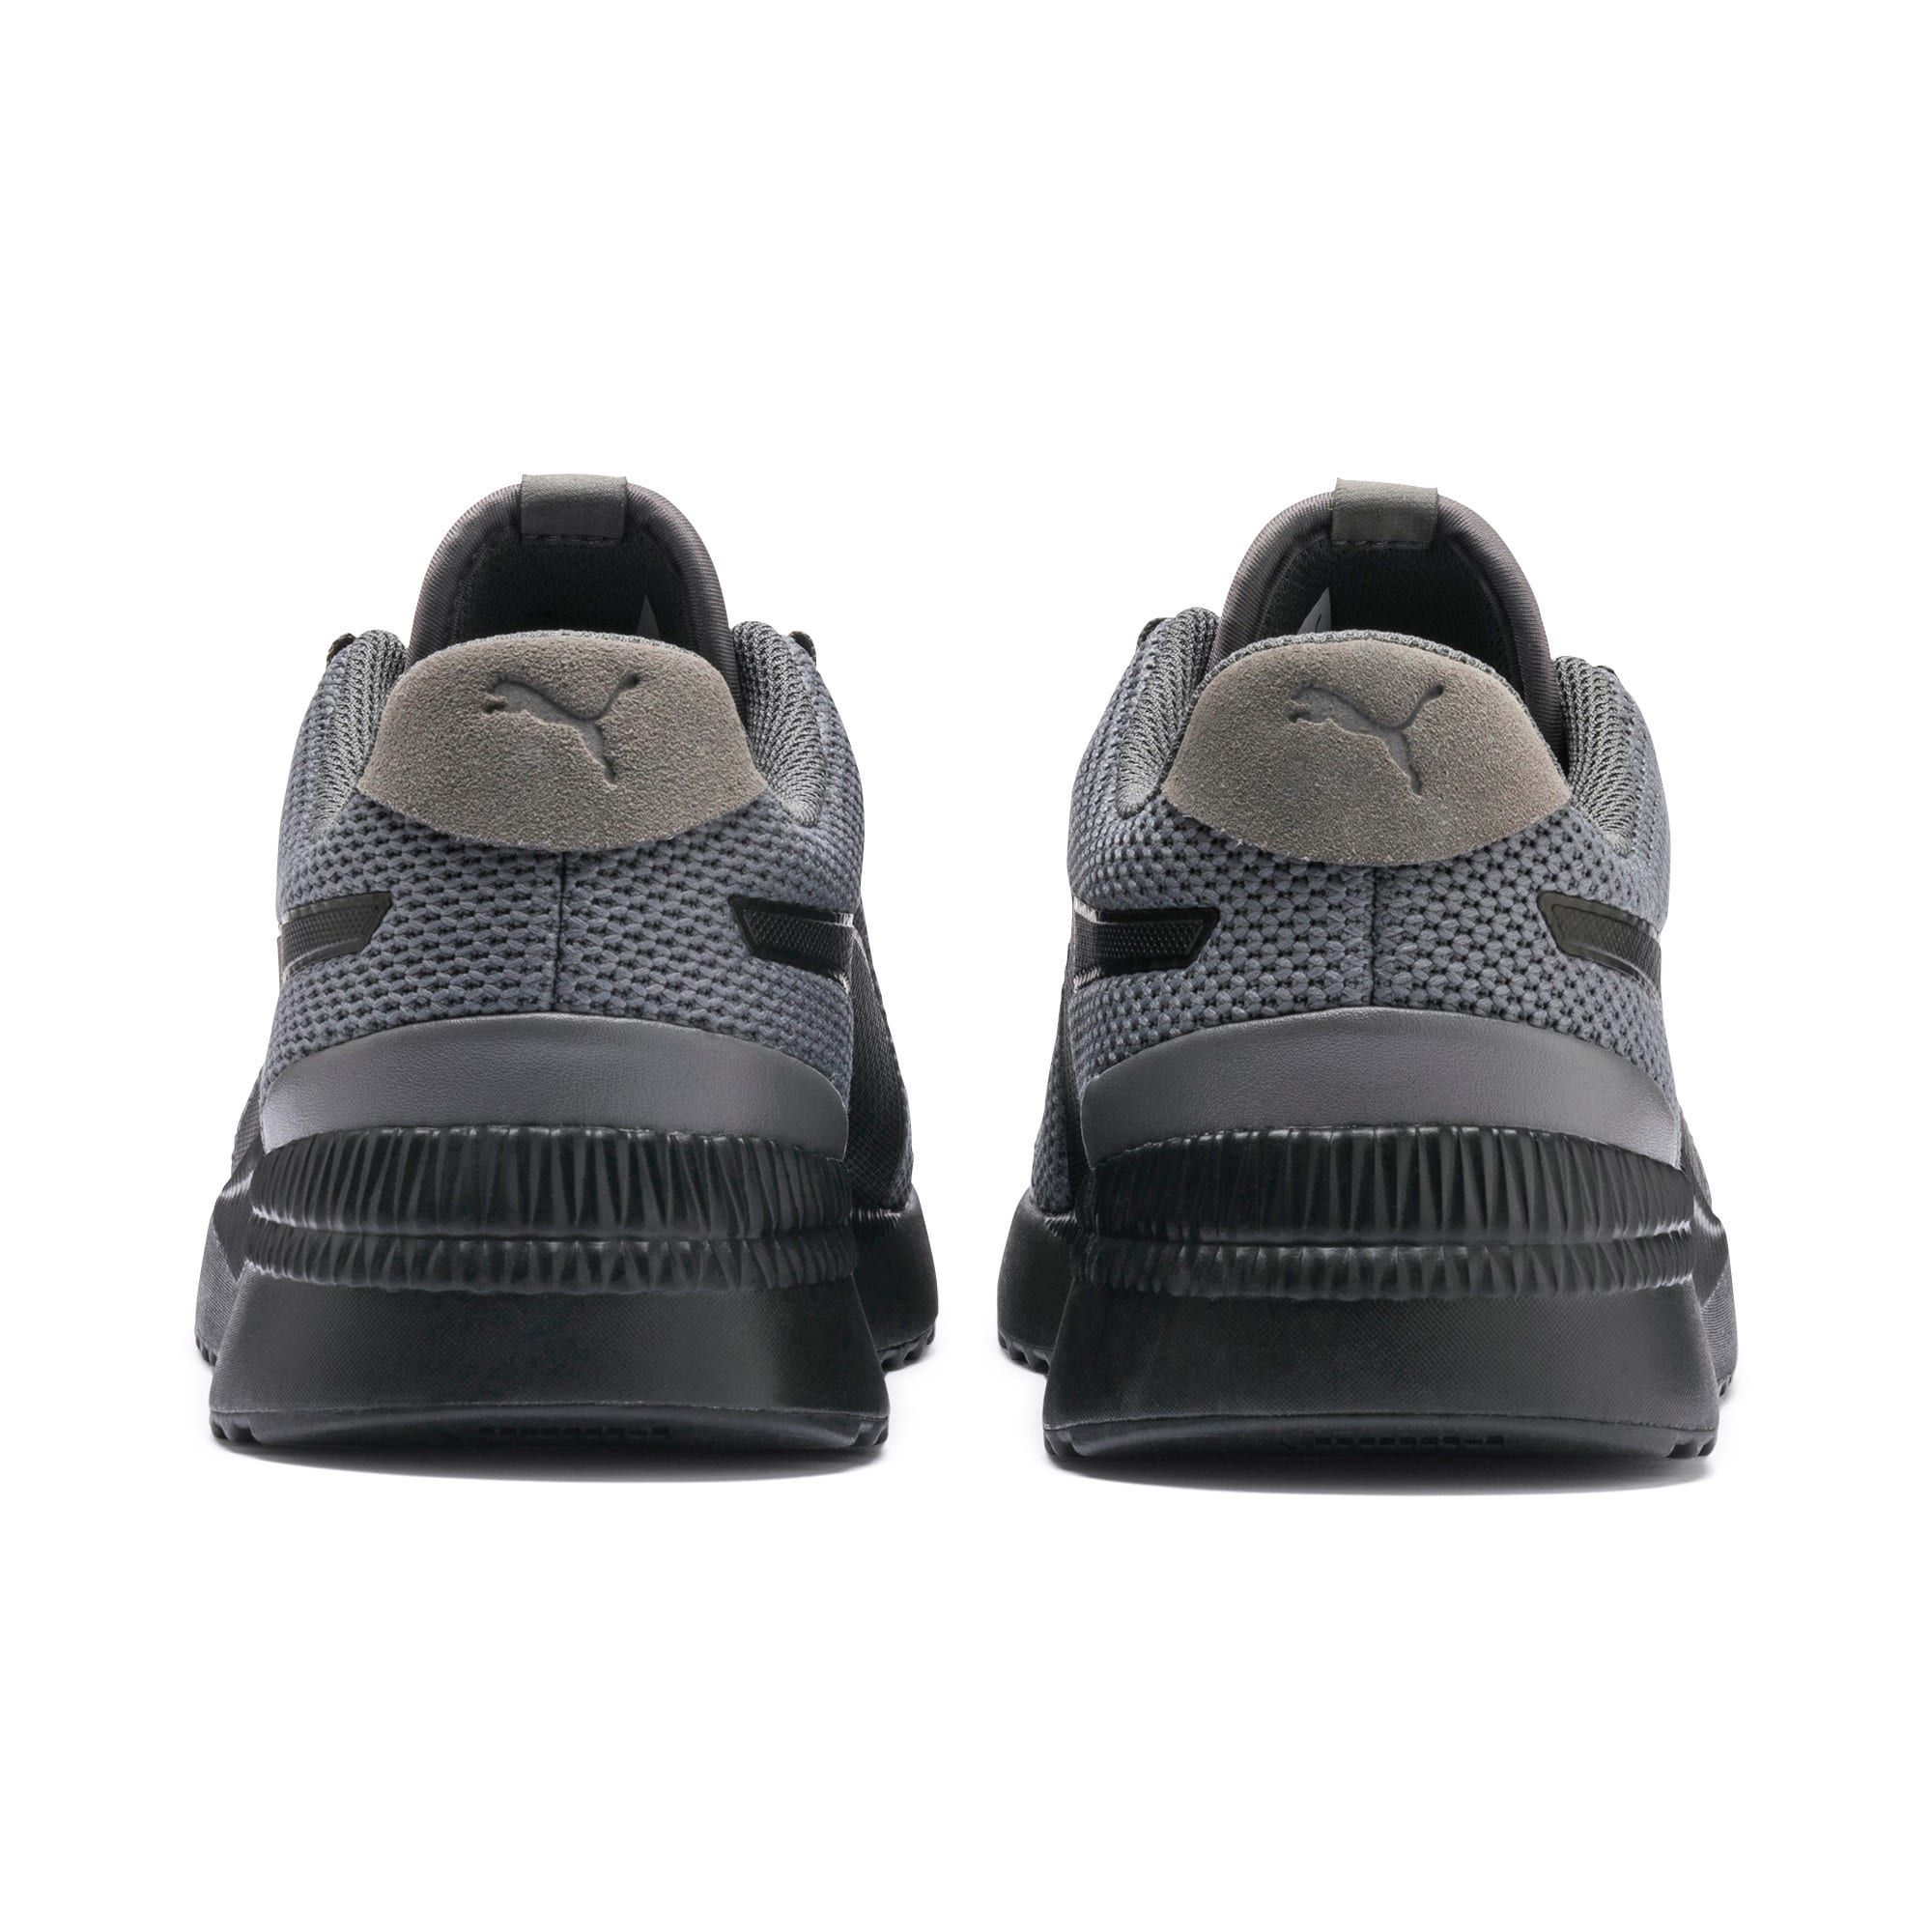 PUMA Pacer Next FS Knit 2.0 Trainers in Grey size 4